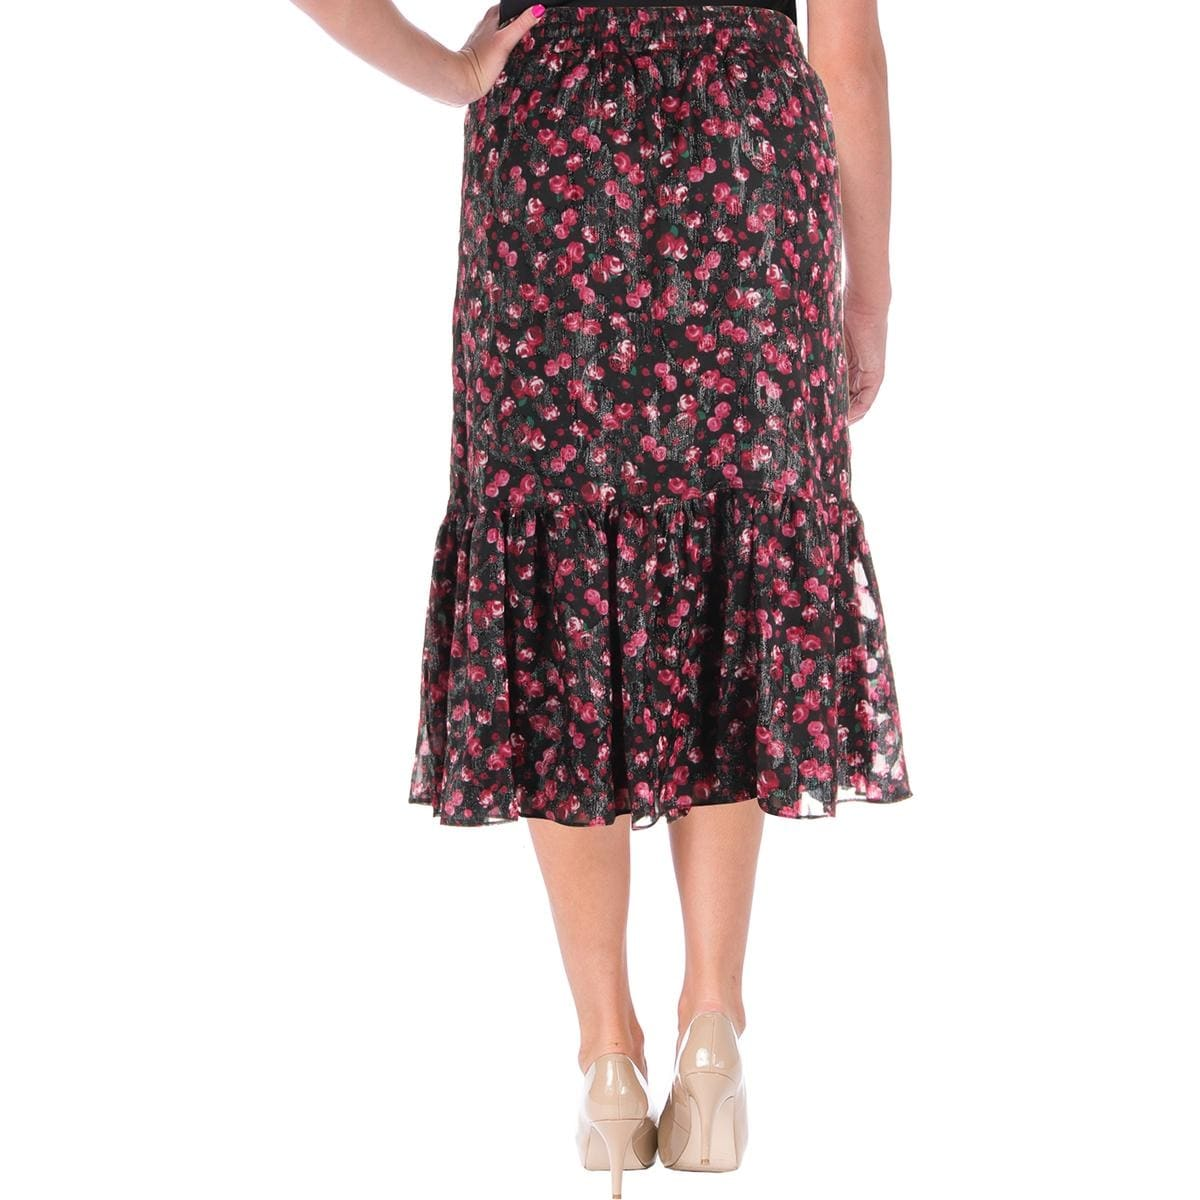 f56147b988 Shop Lauren Ralph Lauren Womens Flounce Skirt Metallic Floral Print - S -  Free Shipping On Orders Over $45 - Overstock - 23512054